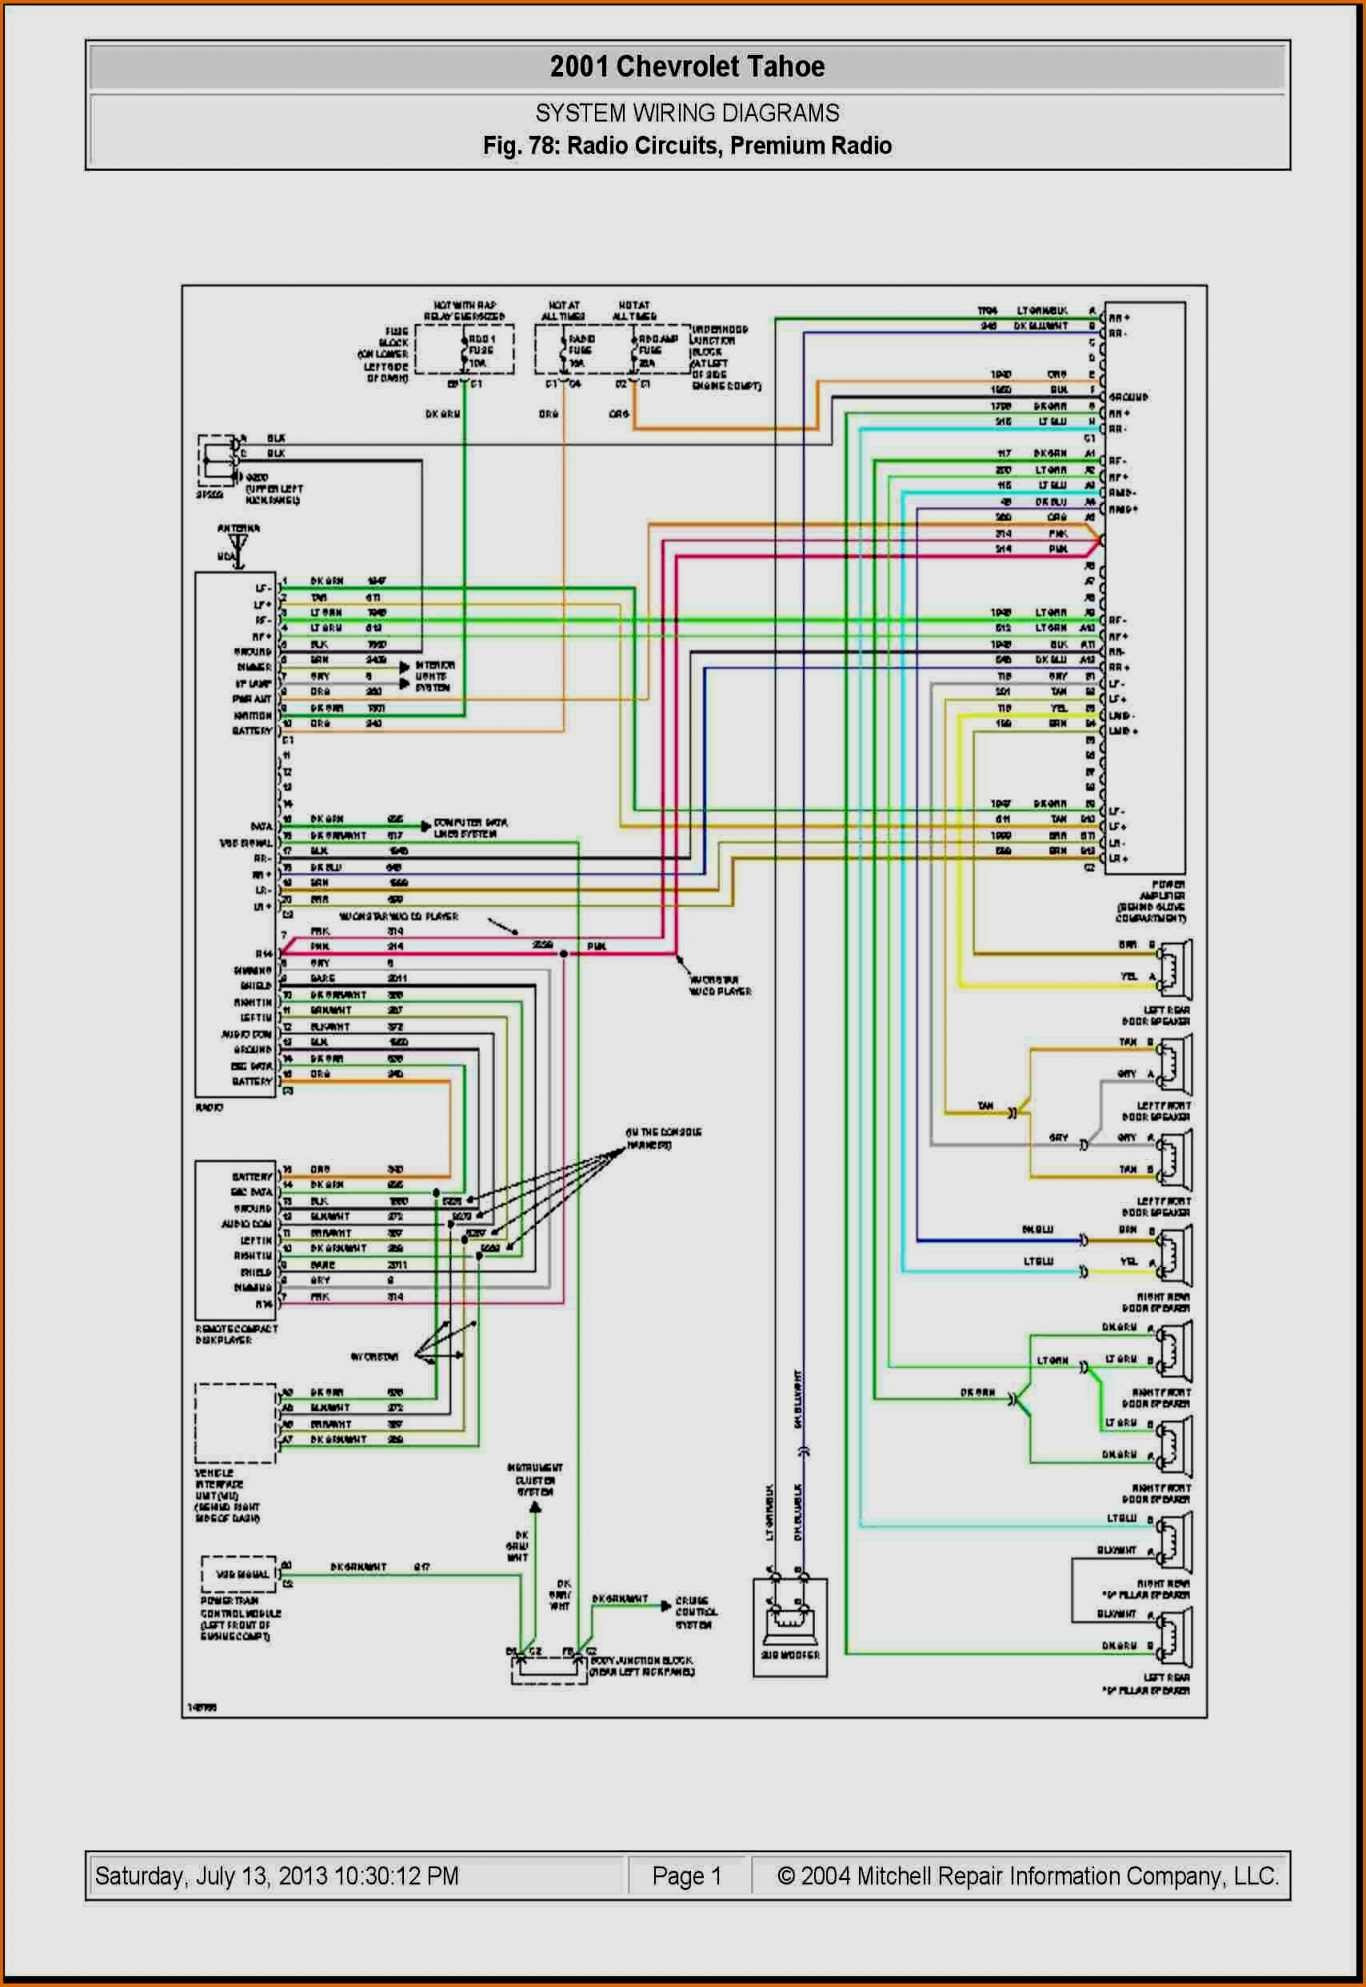 DIAGRAM] 2002 Gmc Envoy Stereo Wiring Diagram FULL Version HD Quality Wiring  Diagram - MAMI-DIAGRAM.RADD.FRDiagram Database - Radd